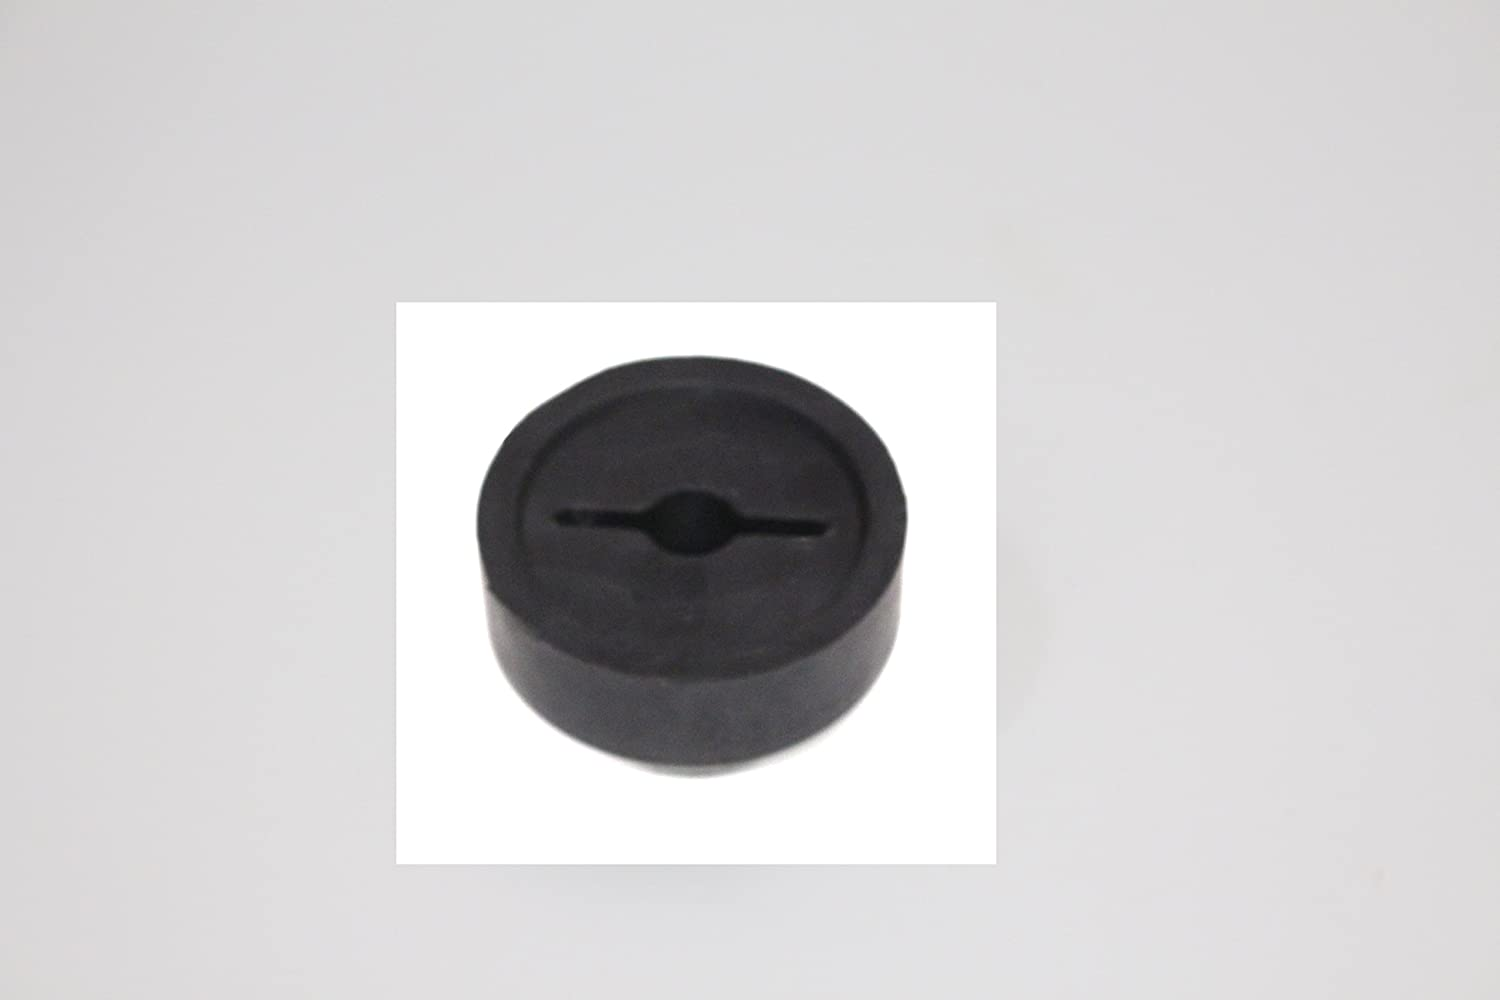 Winch Stopper Line Saver Synthetic Or Cable Rope 4x4 Atv Jeep ORV JSP Manufacturing BU-Winch-FBA